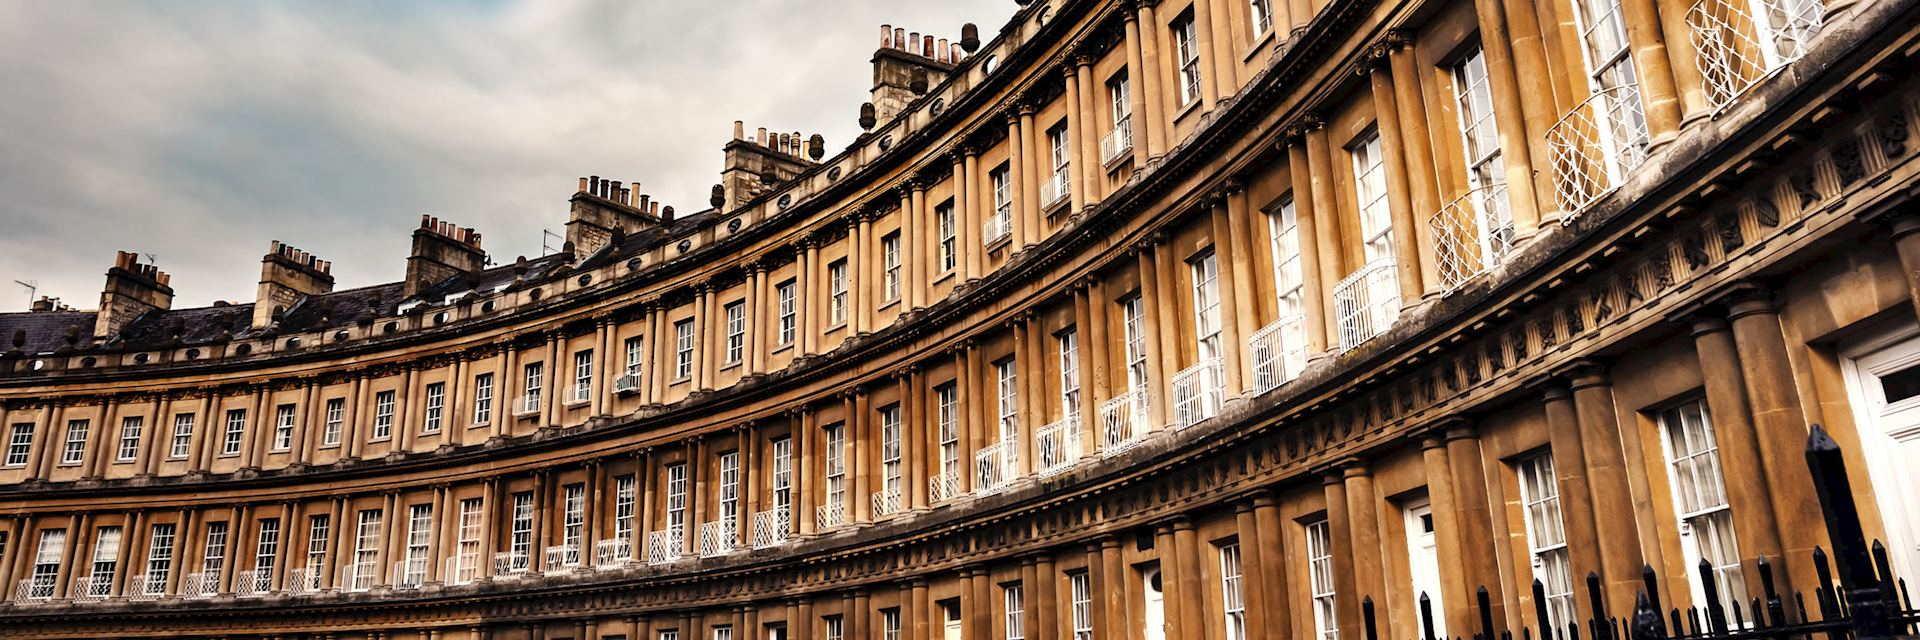 The Royal Crescent building, Bath